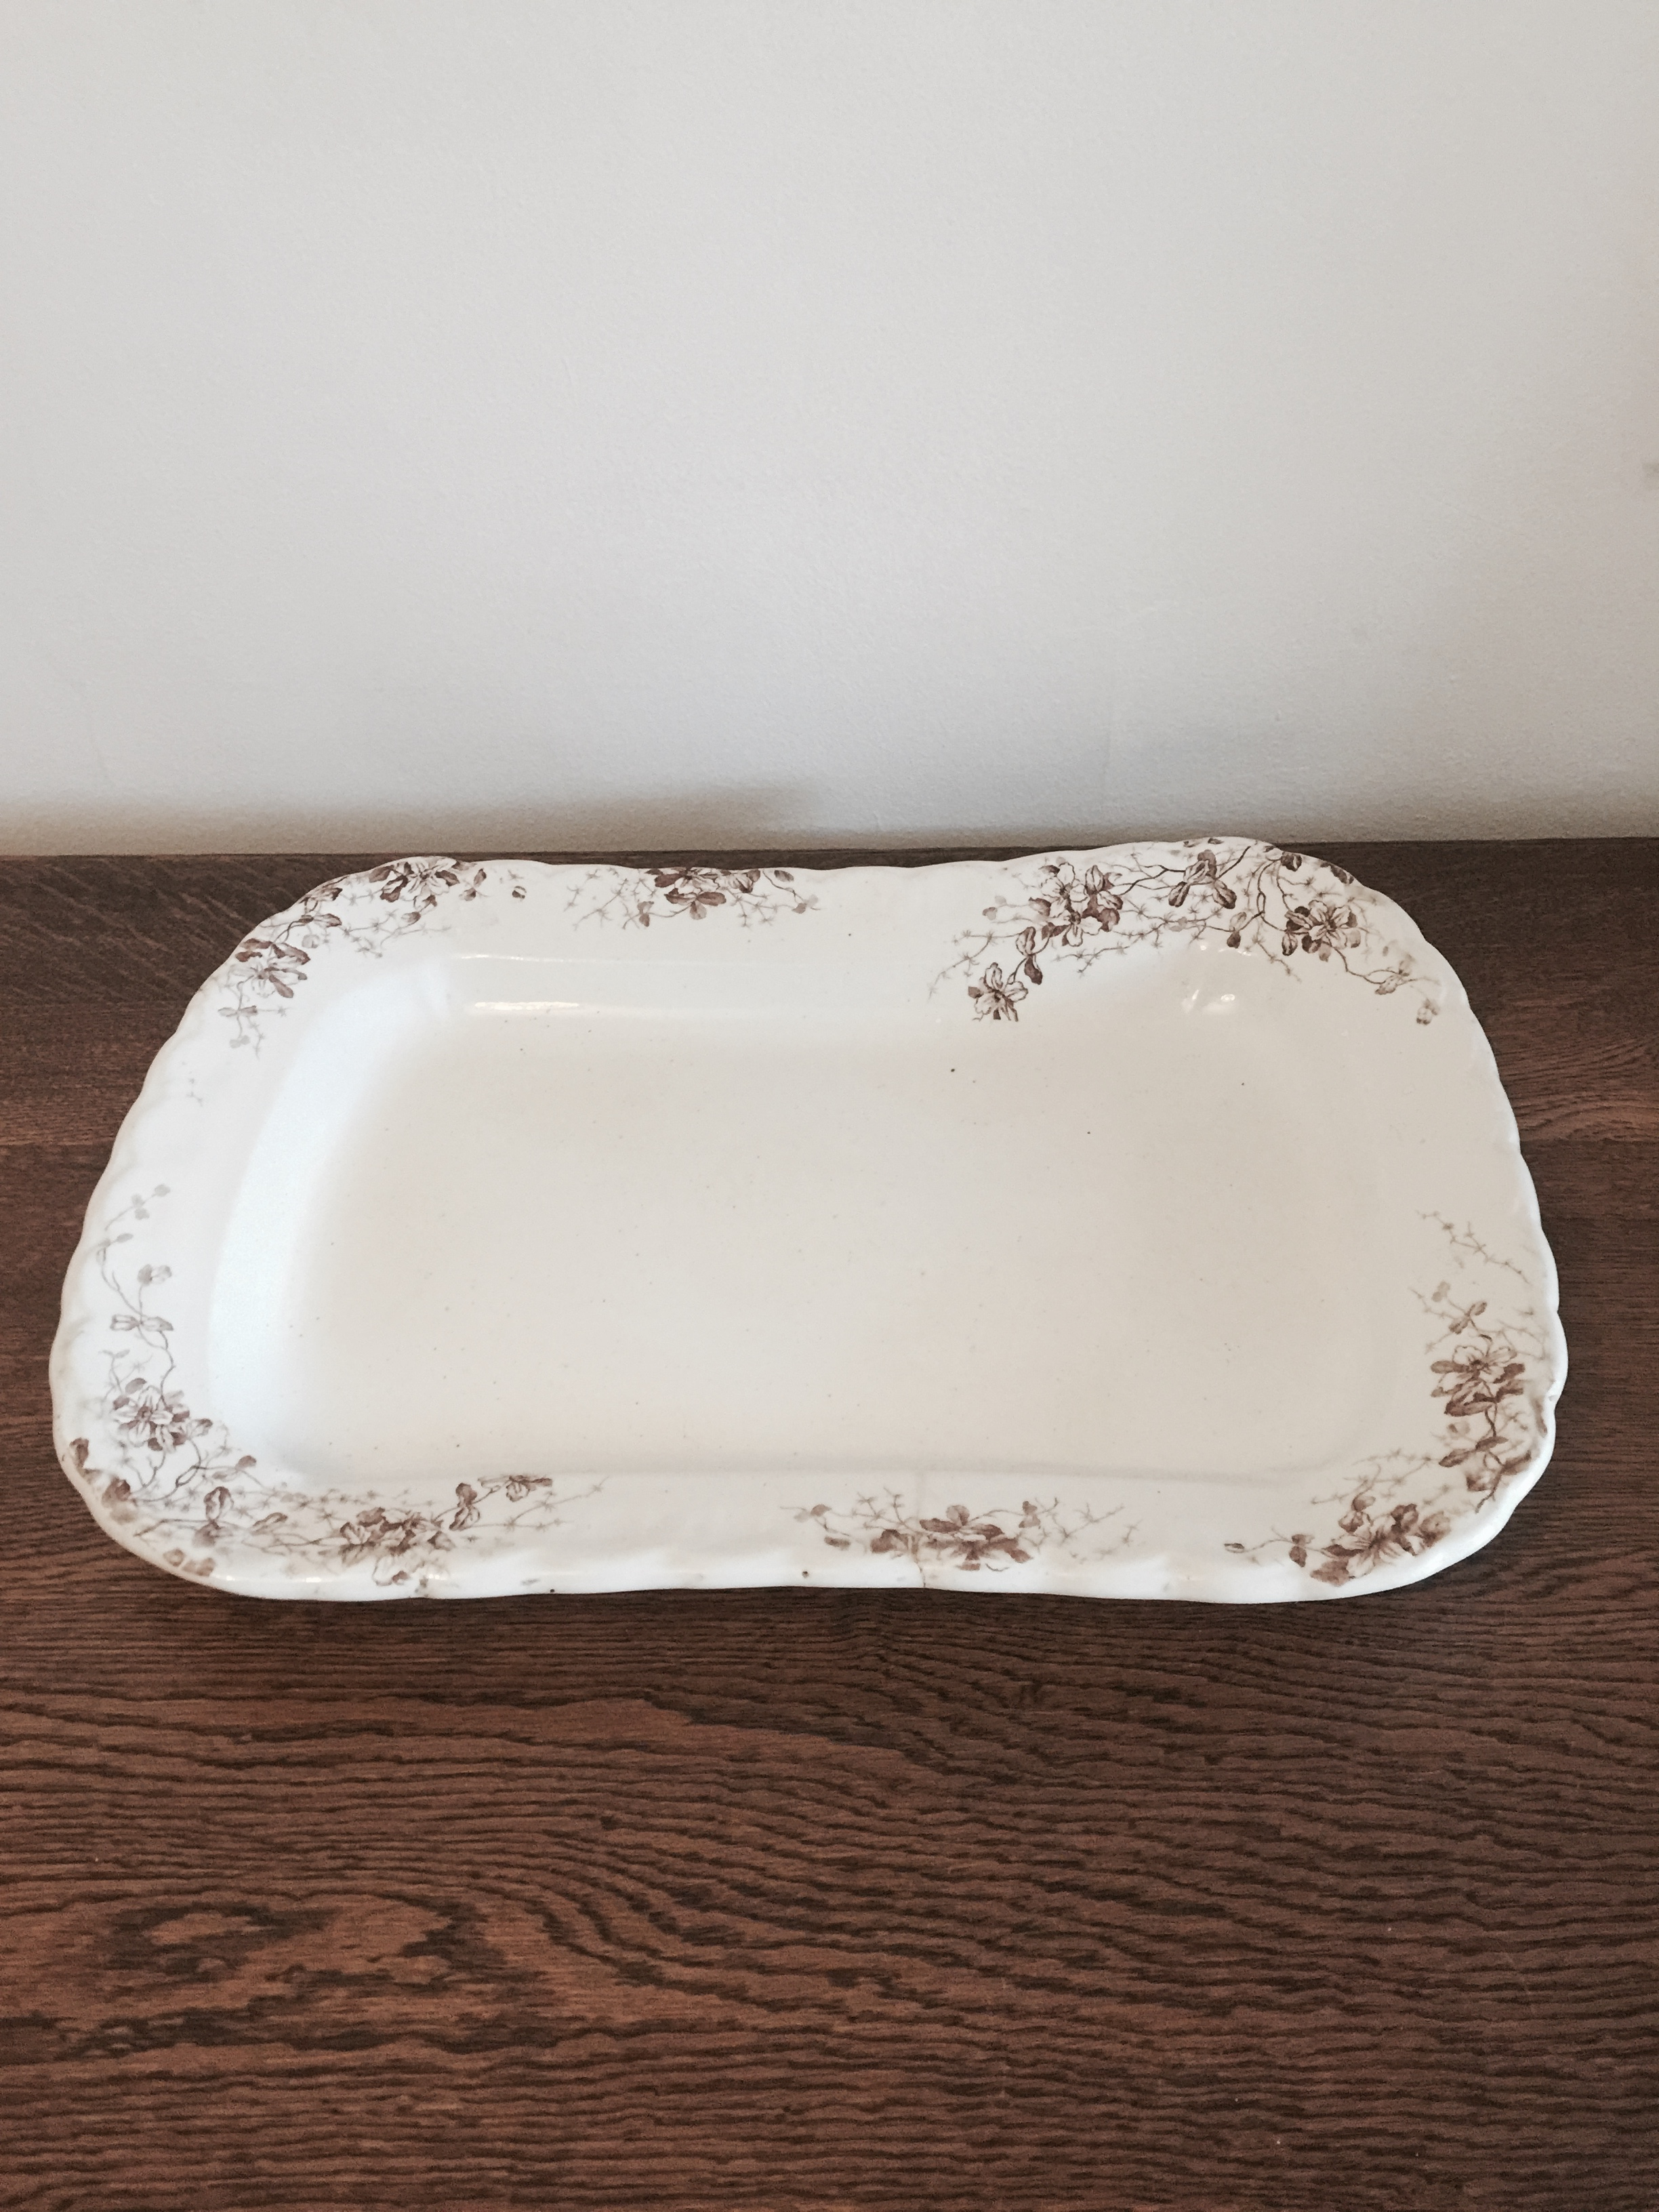 Serving platter £2 each to hire